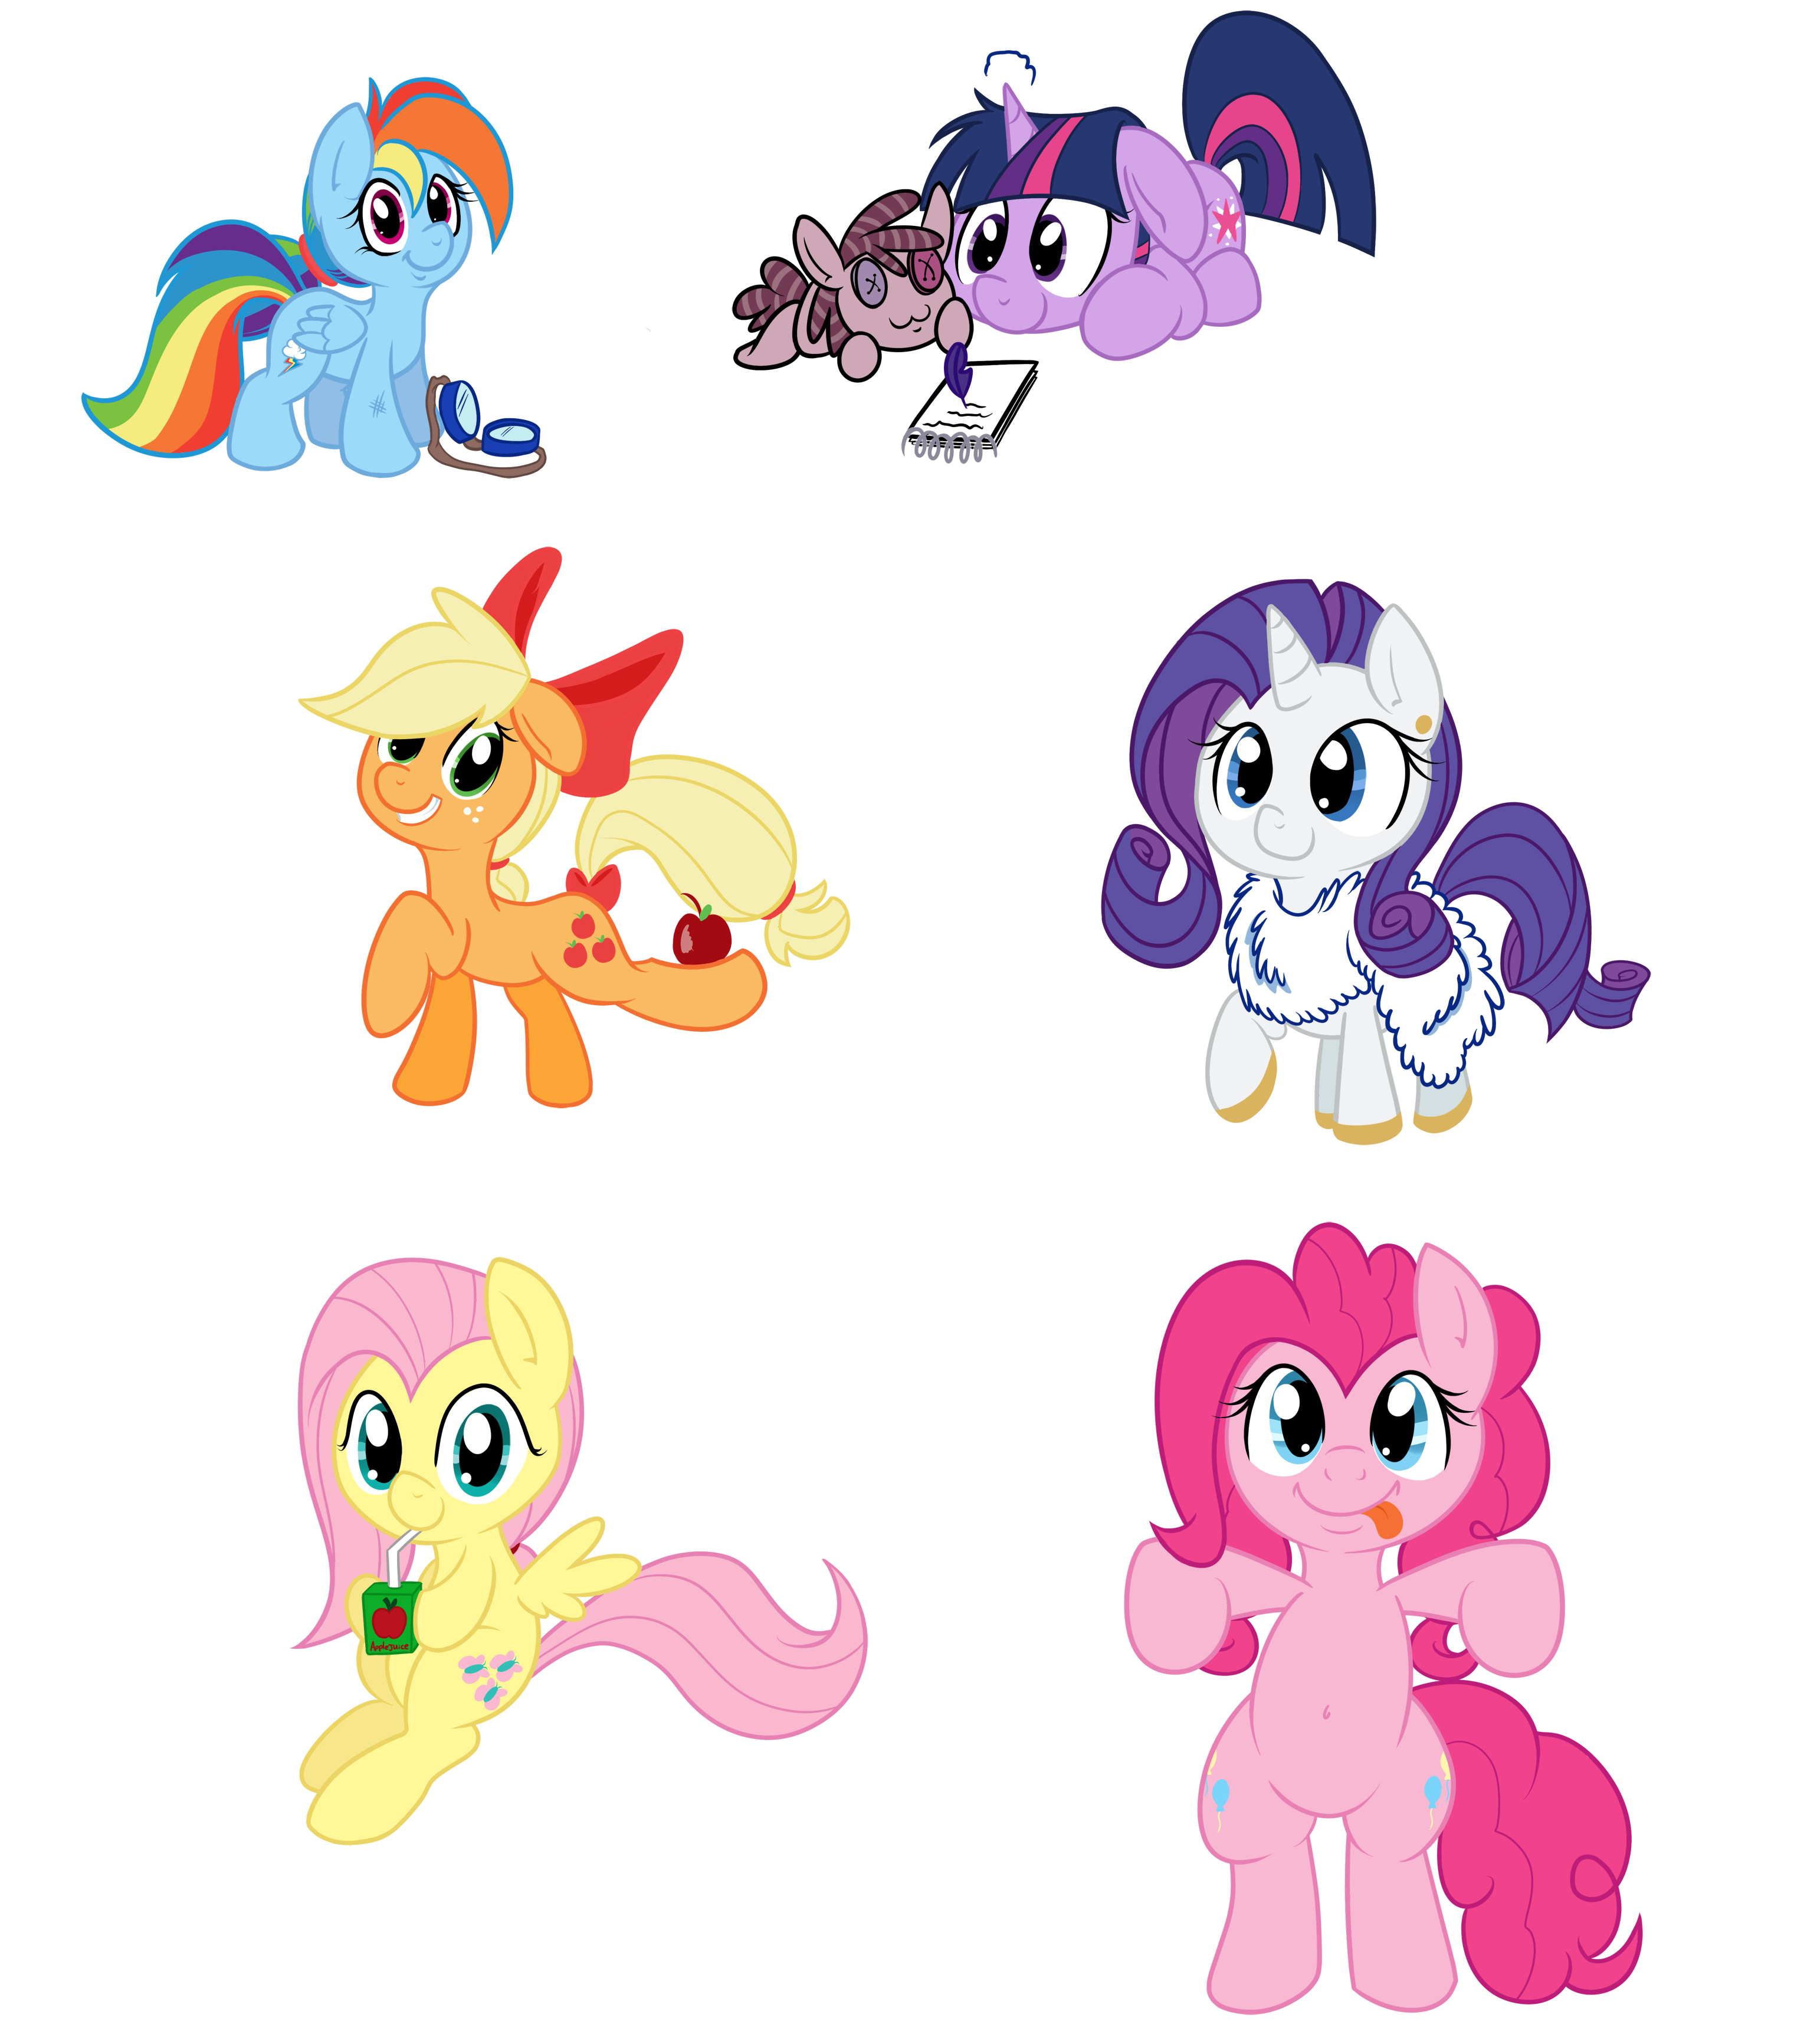 mlp fim meet the ponies rainbow